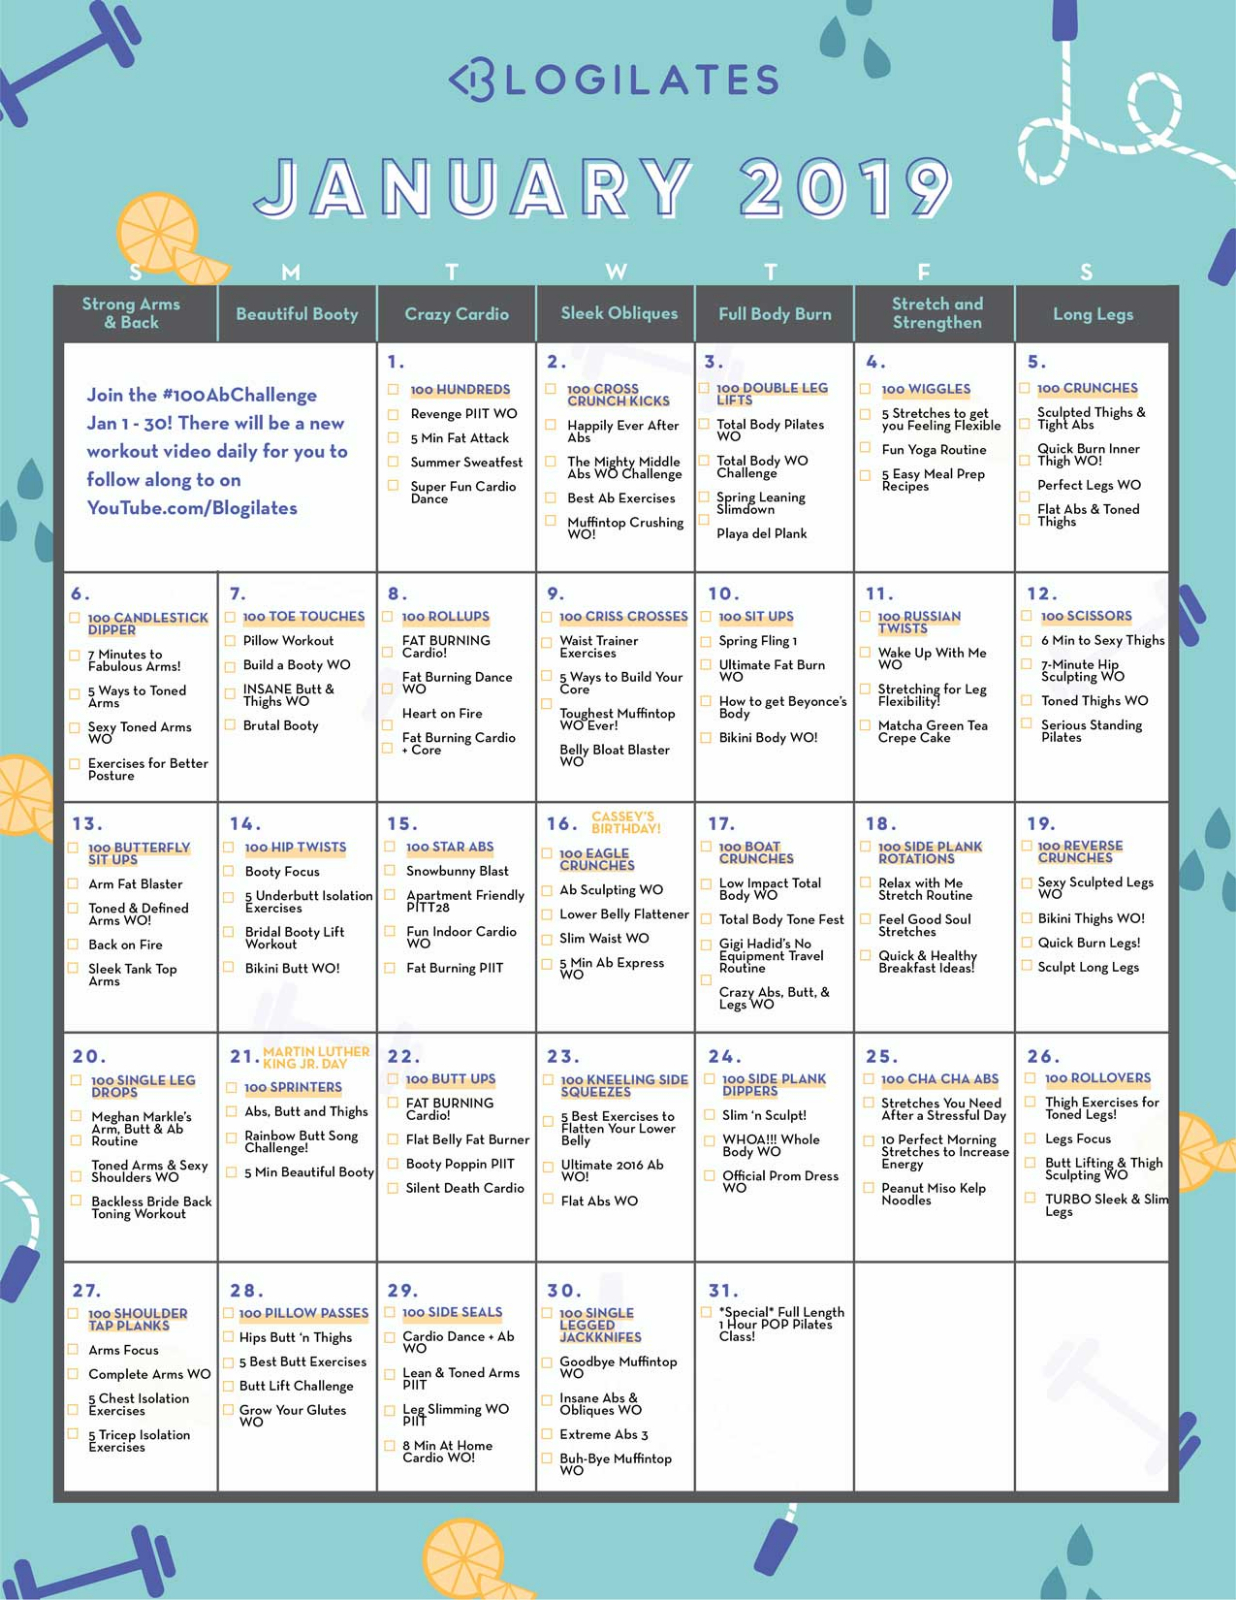 Blogilates Calendar February 2019 Calendar Archives – Blogilates